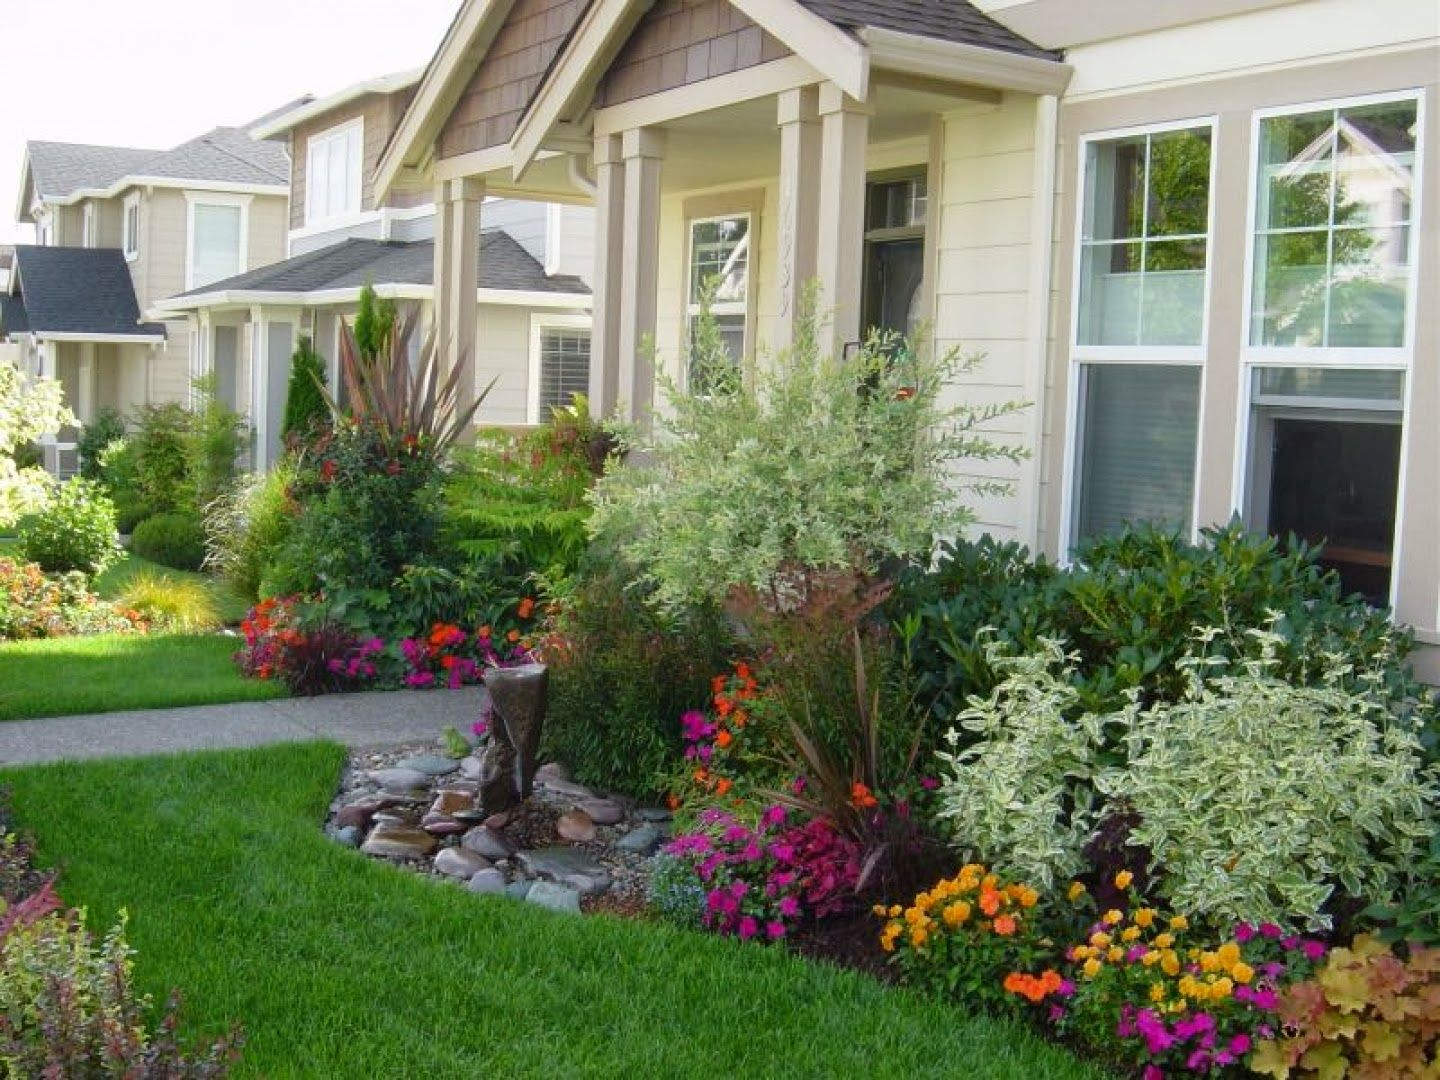 Gardening And Landscaping Front Yard Farmhouse LandscapingLandscaping